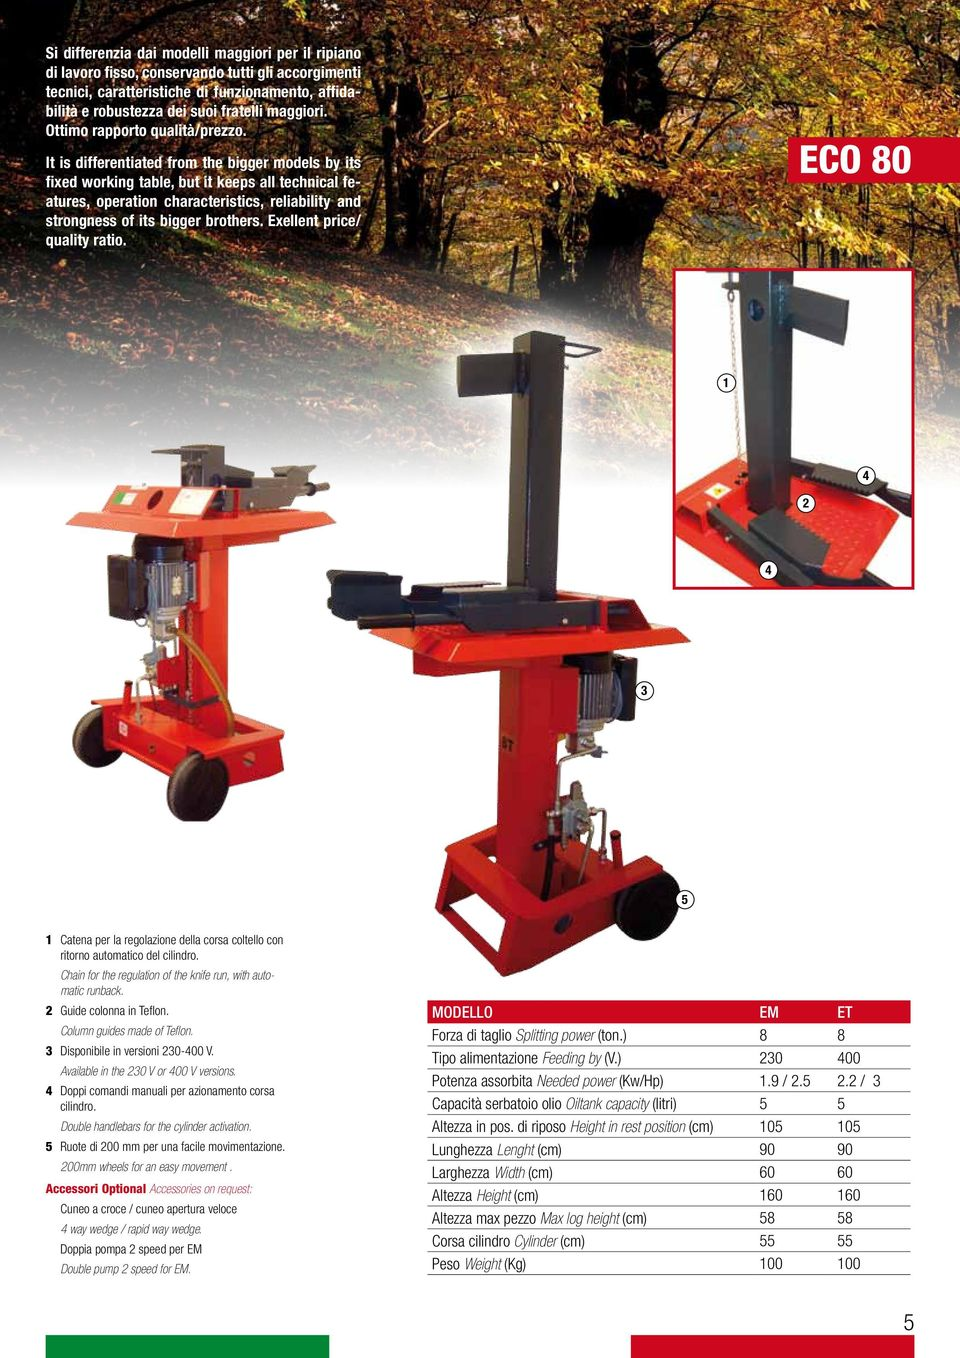 It is differentiated from the bigger models by its fixed working table, but it keeps all technical features, operation characteristics, reliability and strongness of its bigger brothers.